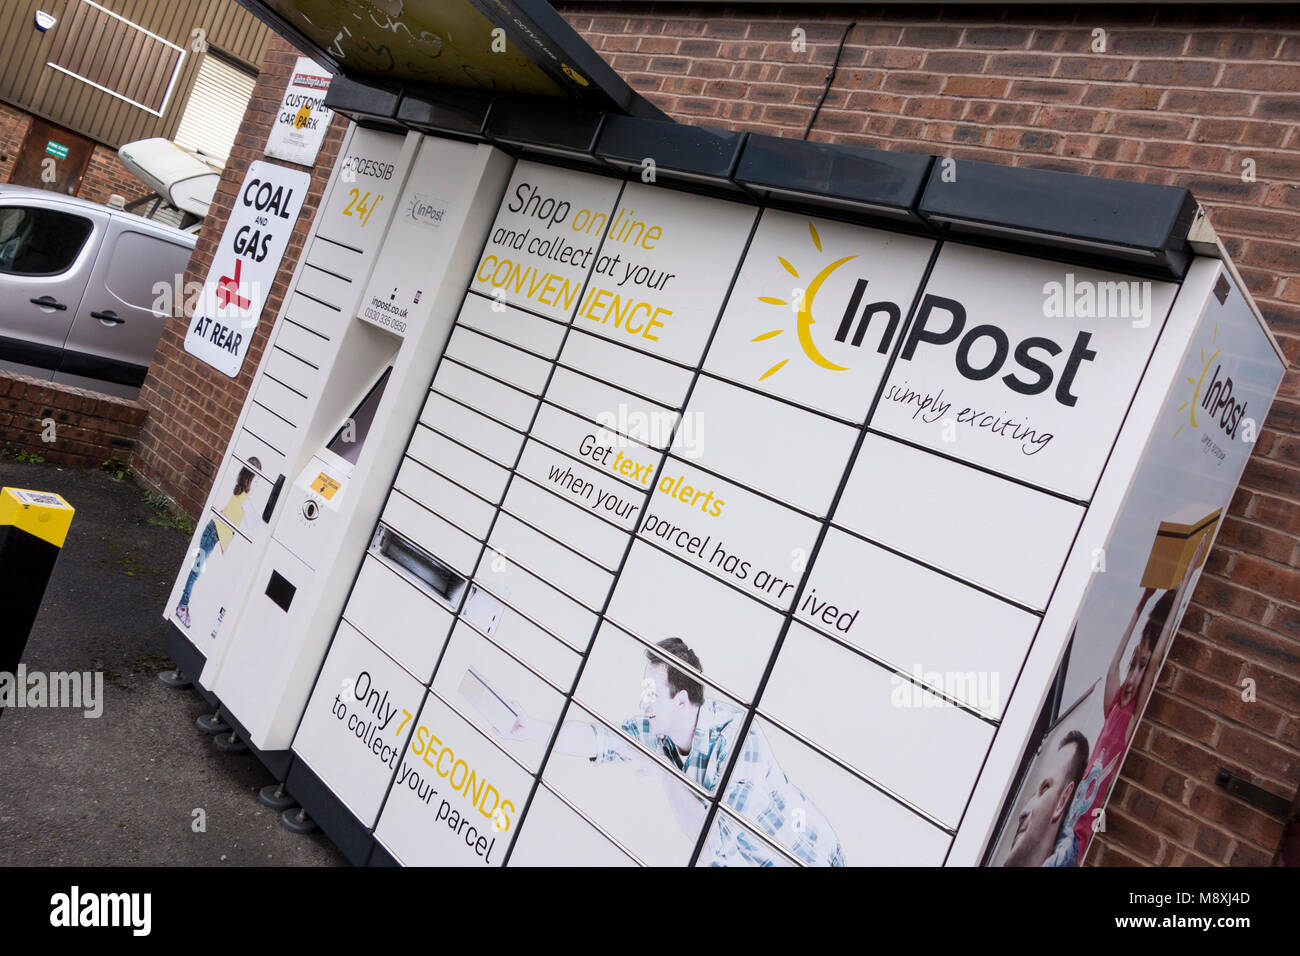 InPost is an alternative click and collect service which lets you pick up your parcel from a secure locker at a - Stock Image